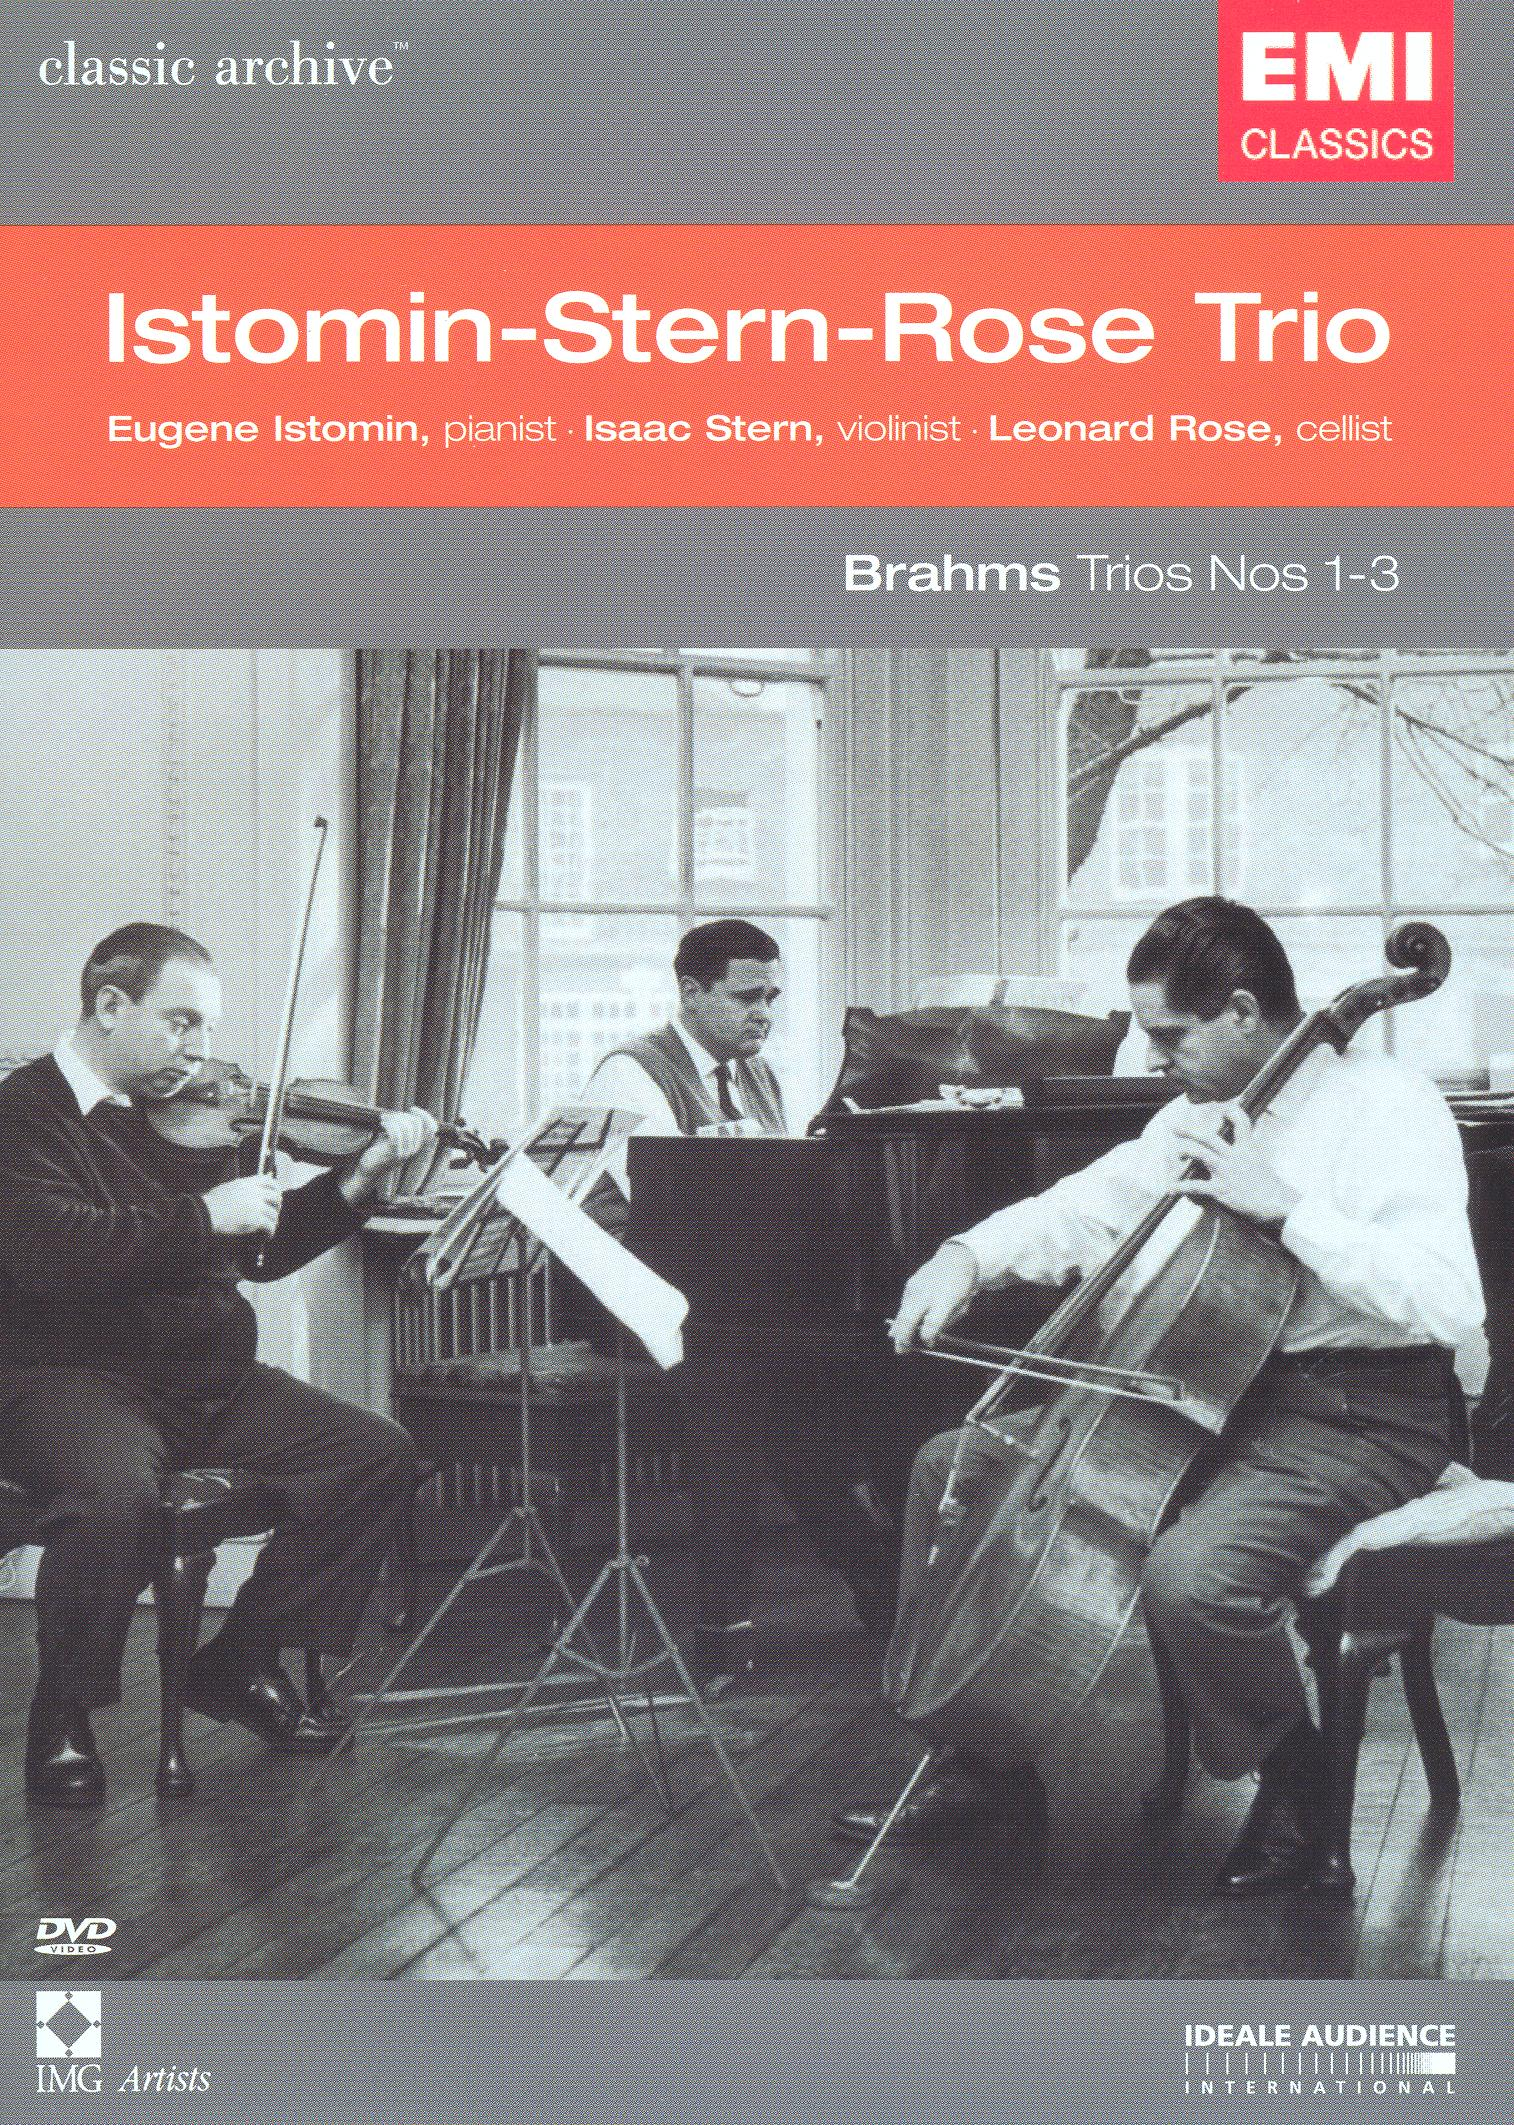 Classic Archive: The Istomin-Stern-Rose Trio - Brahms Trios Nos 1-3